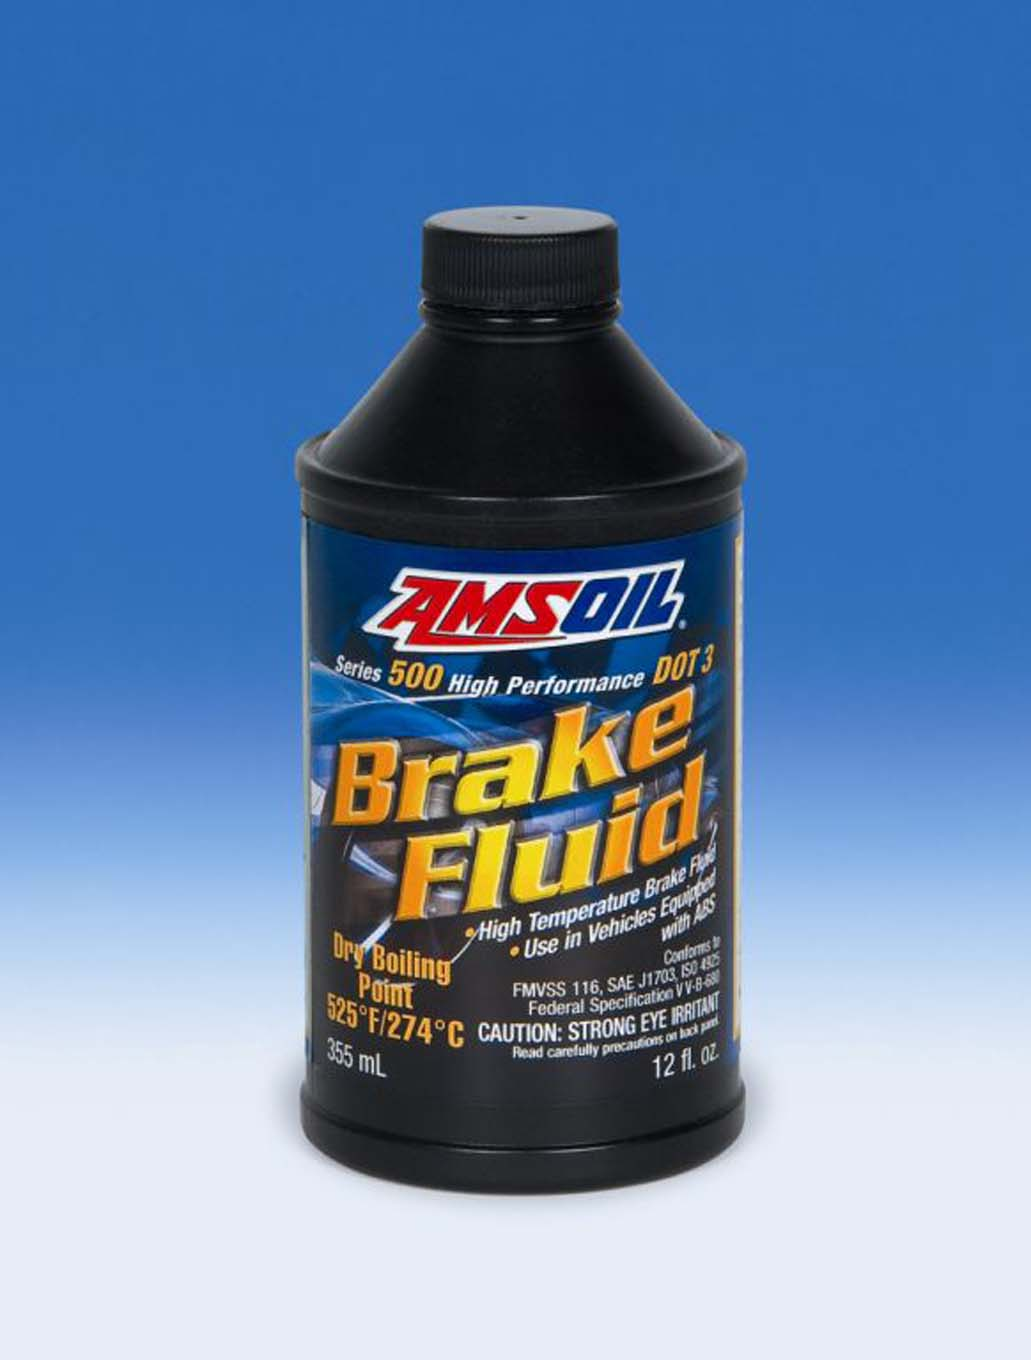 AMSOIL INC. Series 500 High-Performance DOT 3 Brake Fluid and Series 600 High-Performance and Racing DOT 4 Brake Fluid both exceed Federal Motor Vehicle Safety Standard #116 and all requirements of the Department of Transportation (DOT). We used DOT 4.